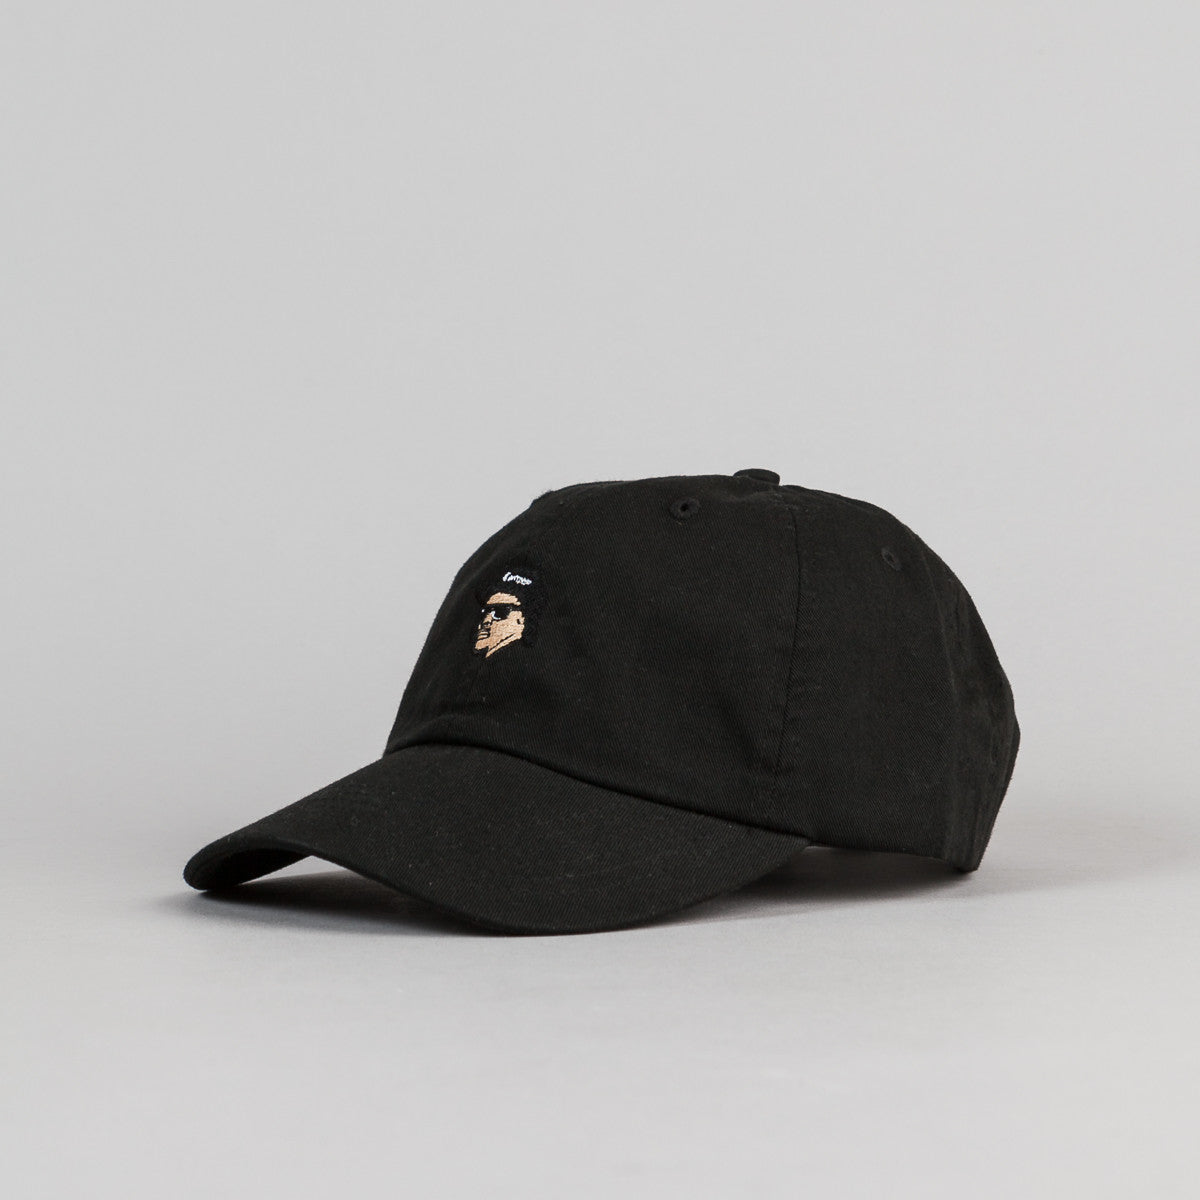 40s & Shorties Eazy Cap - Black